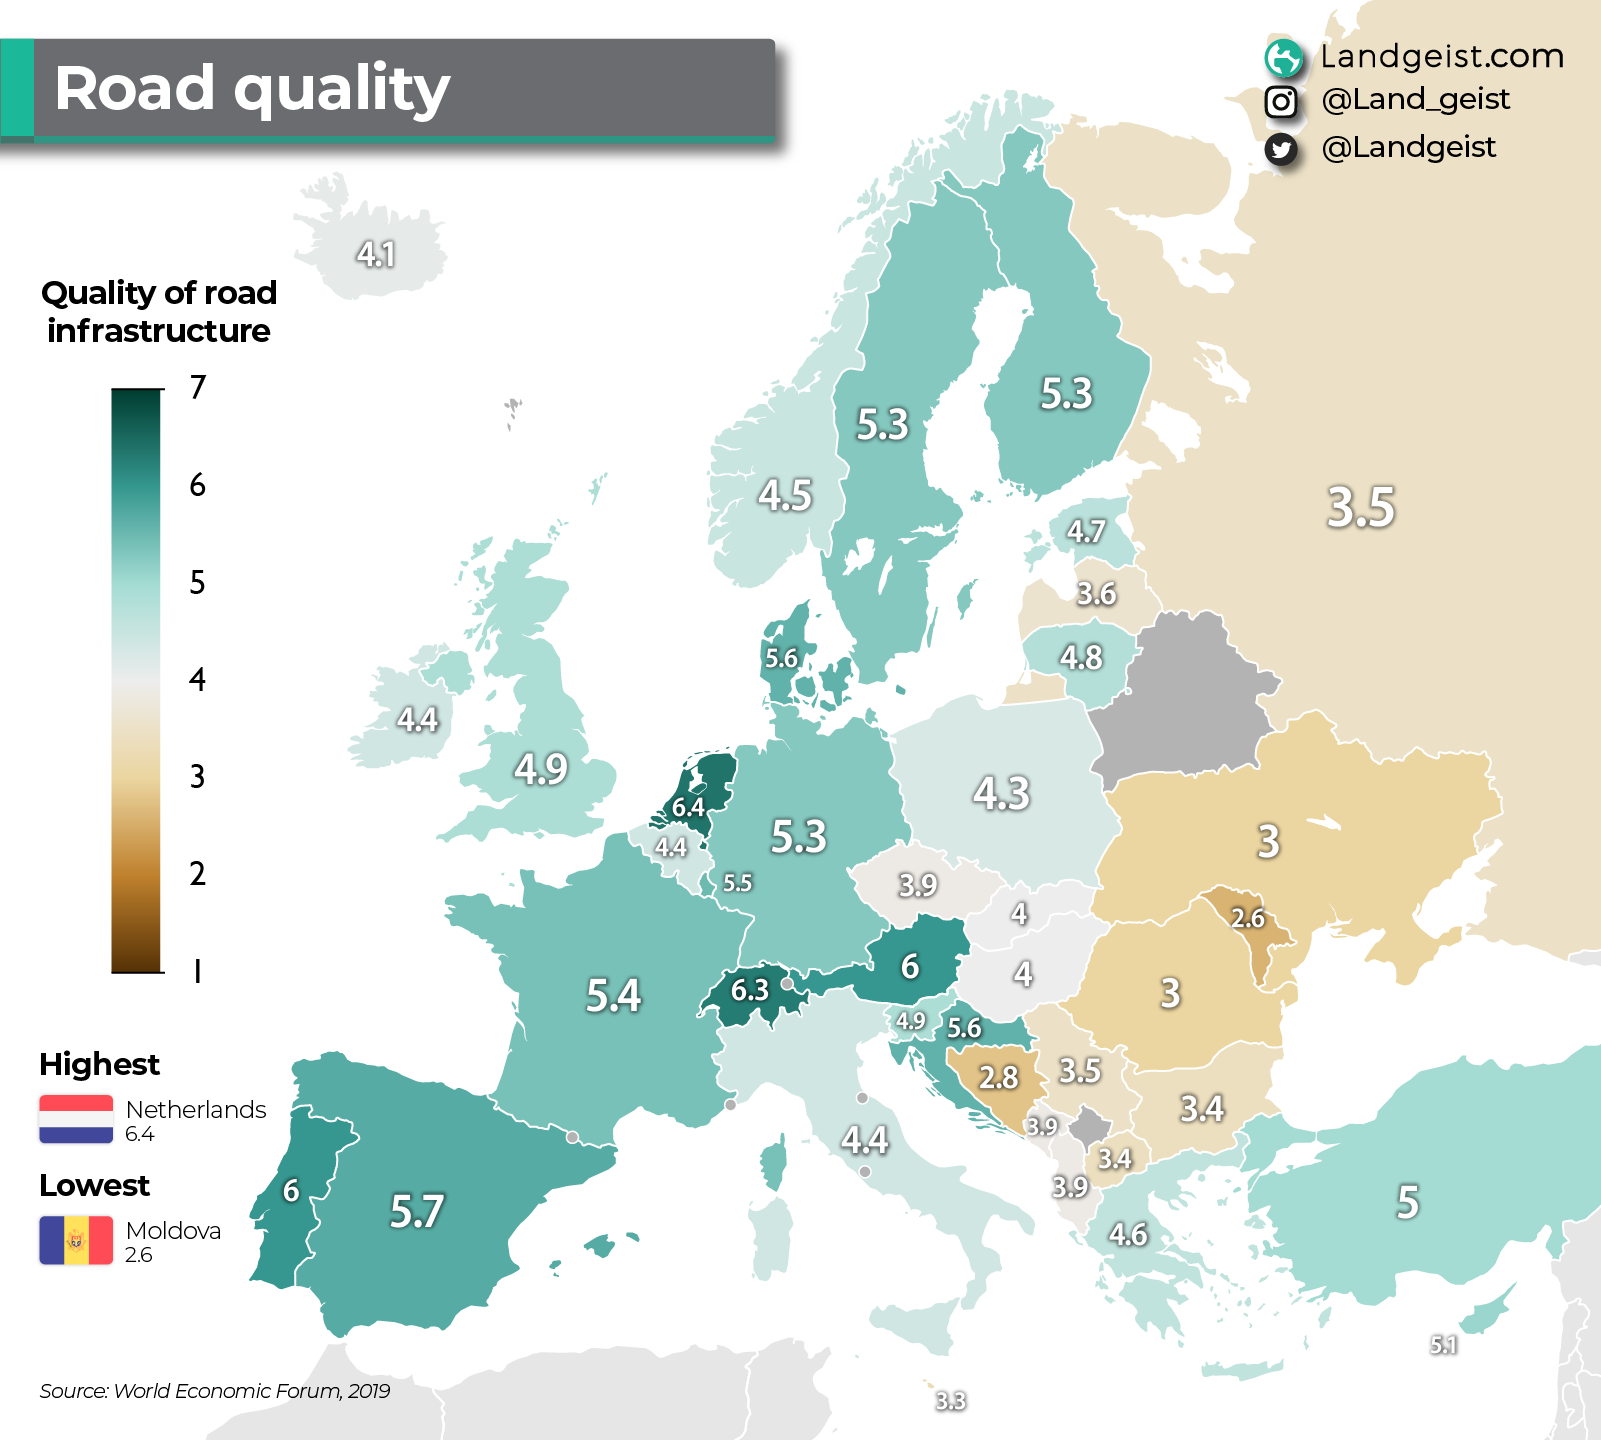 Map of the road quality in Europe.